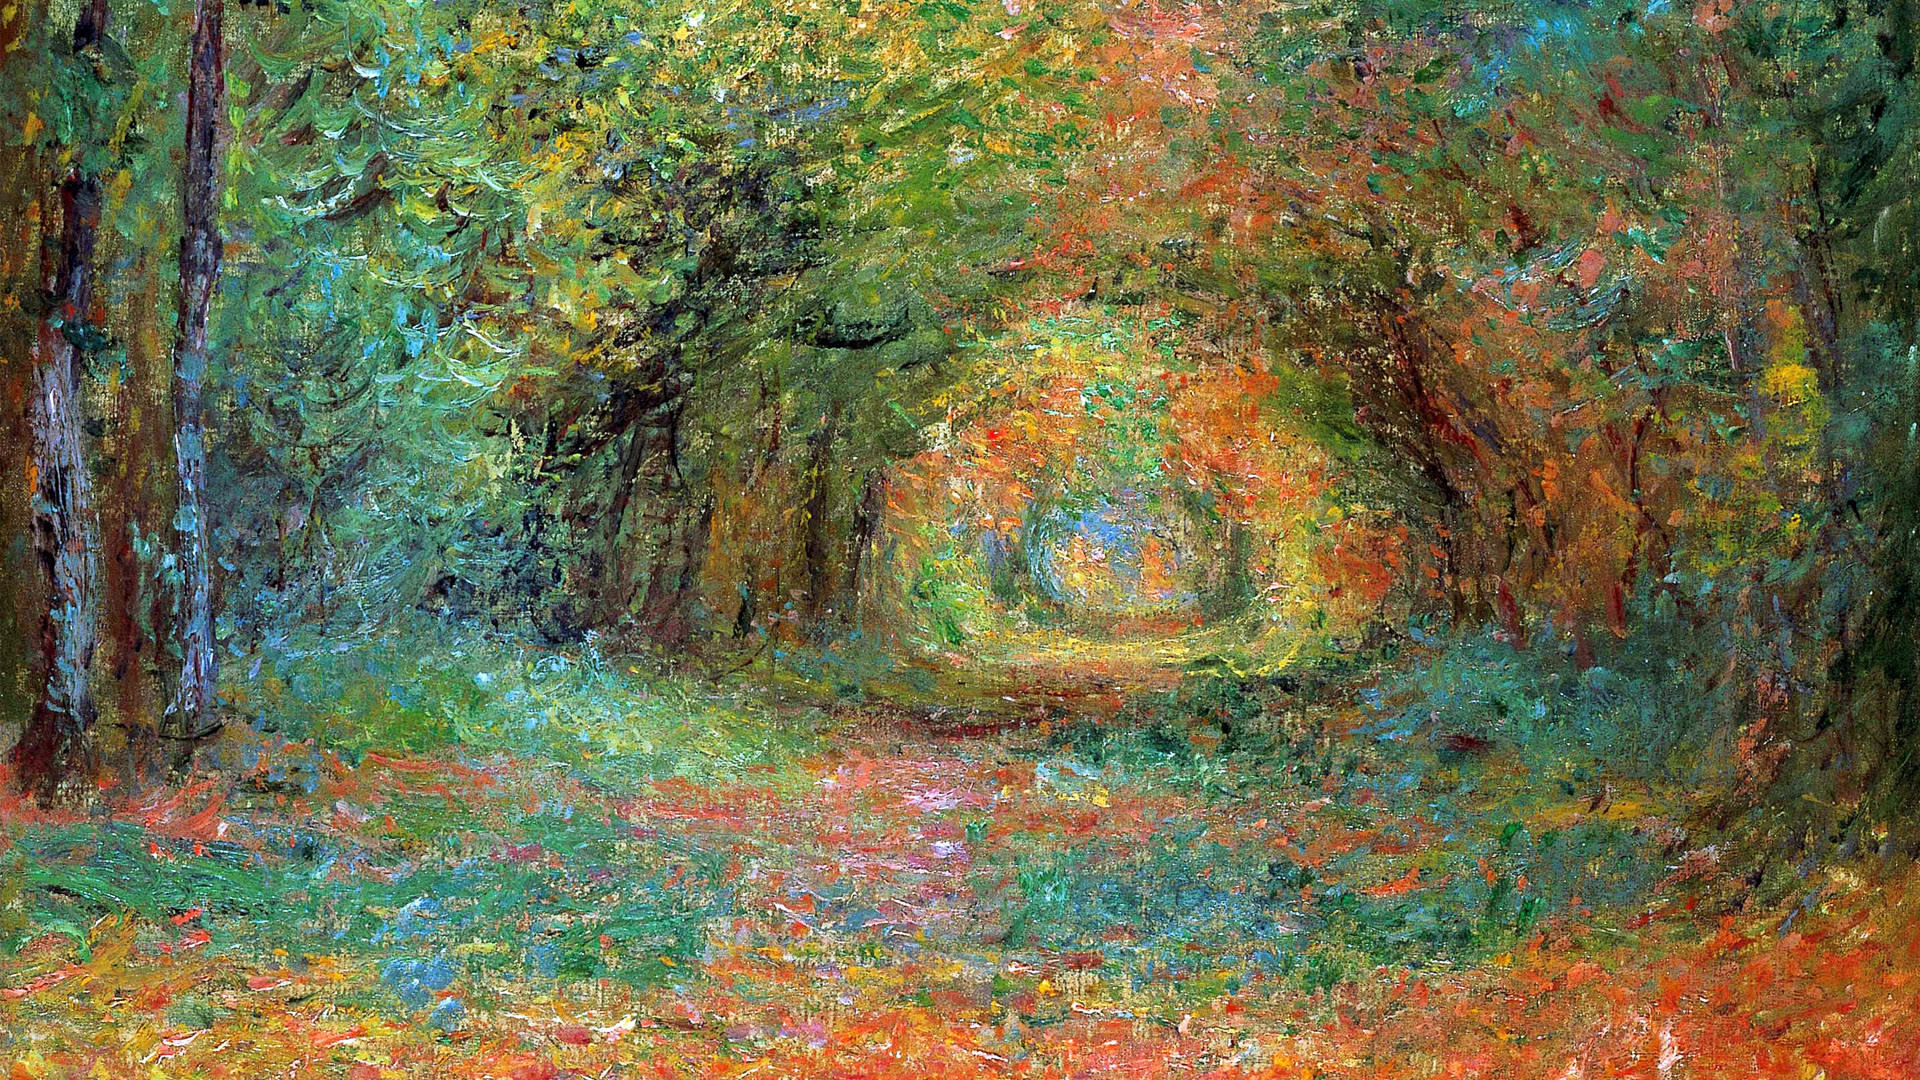 クロード・モネ Claude Monet - The Undergrowth in the Forest of Saint-Germain 1920x1080